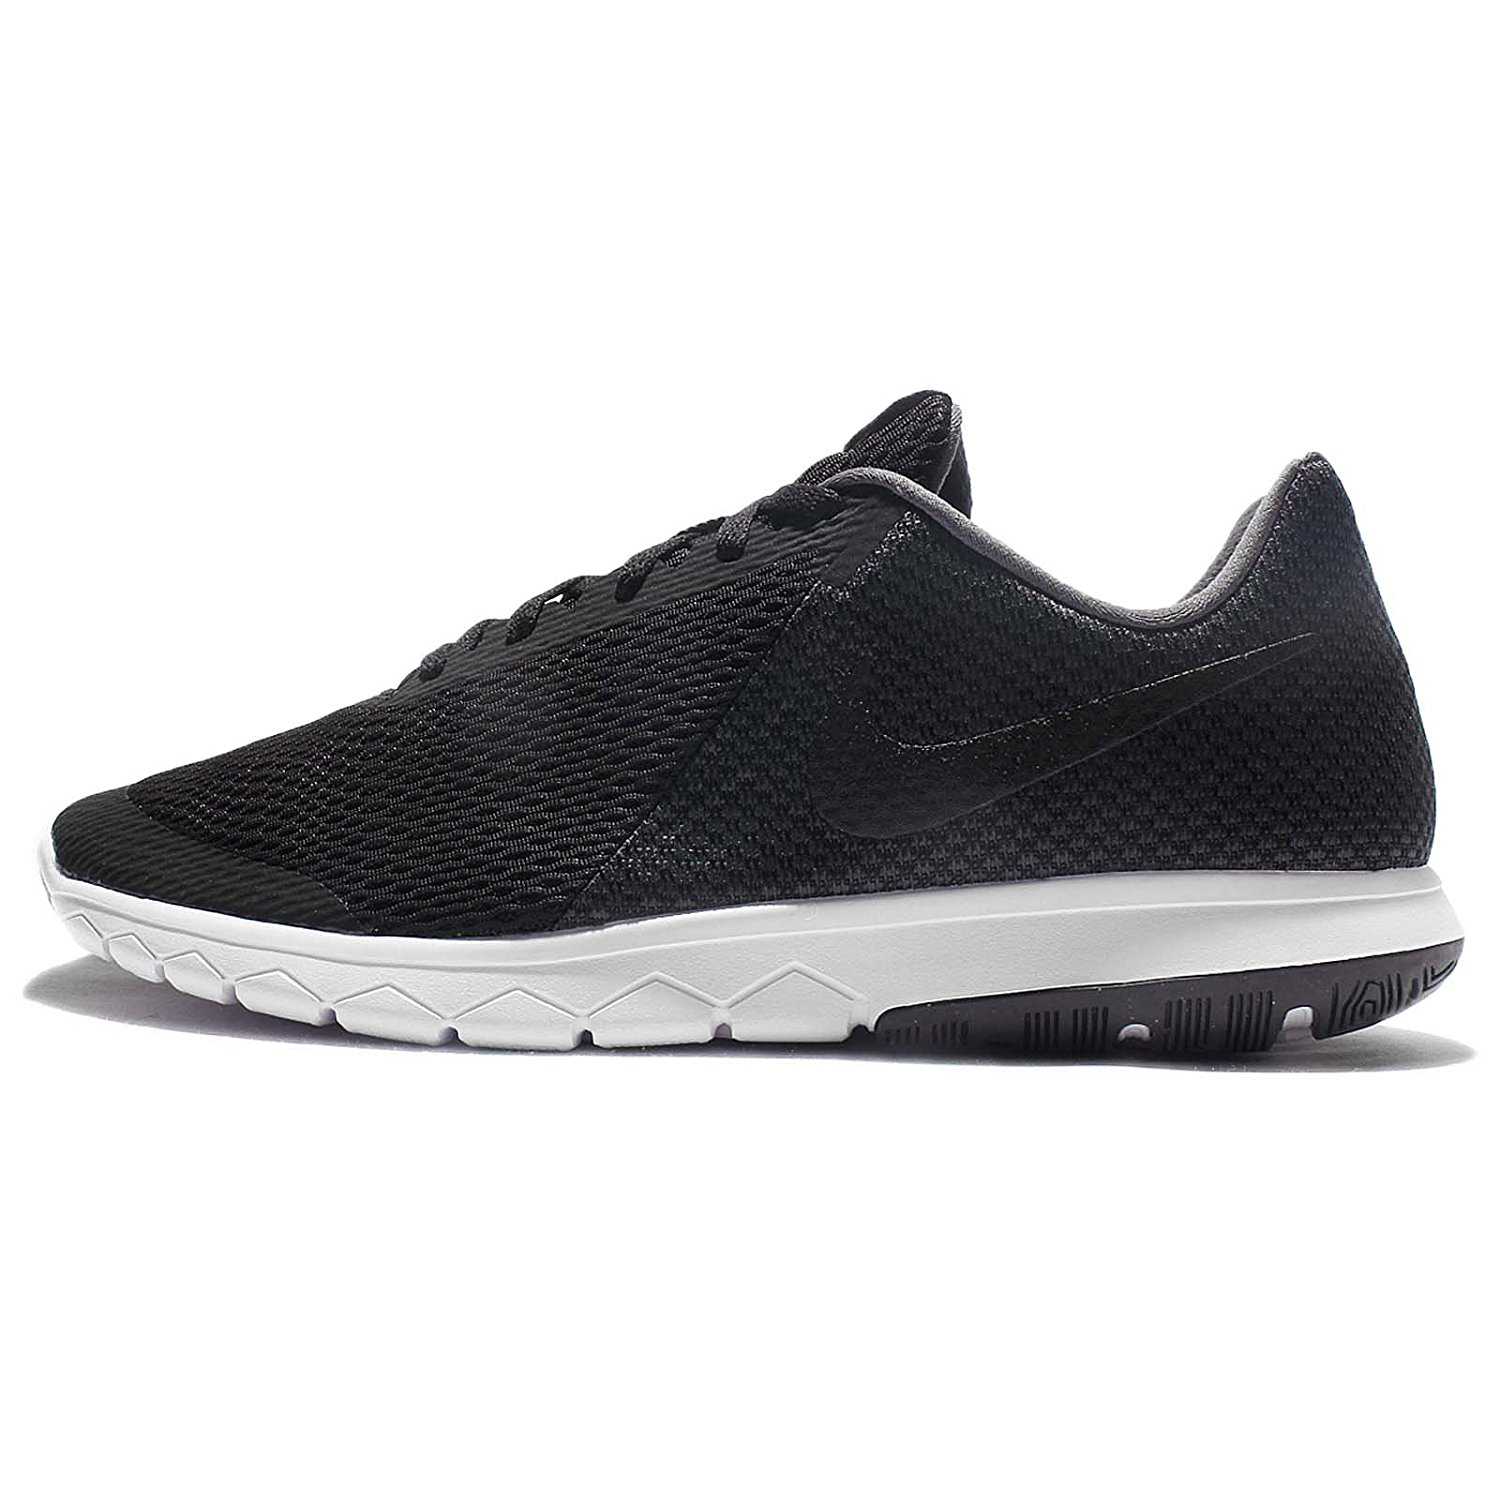 01ed68e80513d Get Quotations · NIKE Men s Flex Experience RN 6 Running Shoes